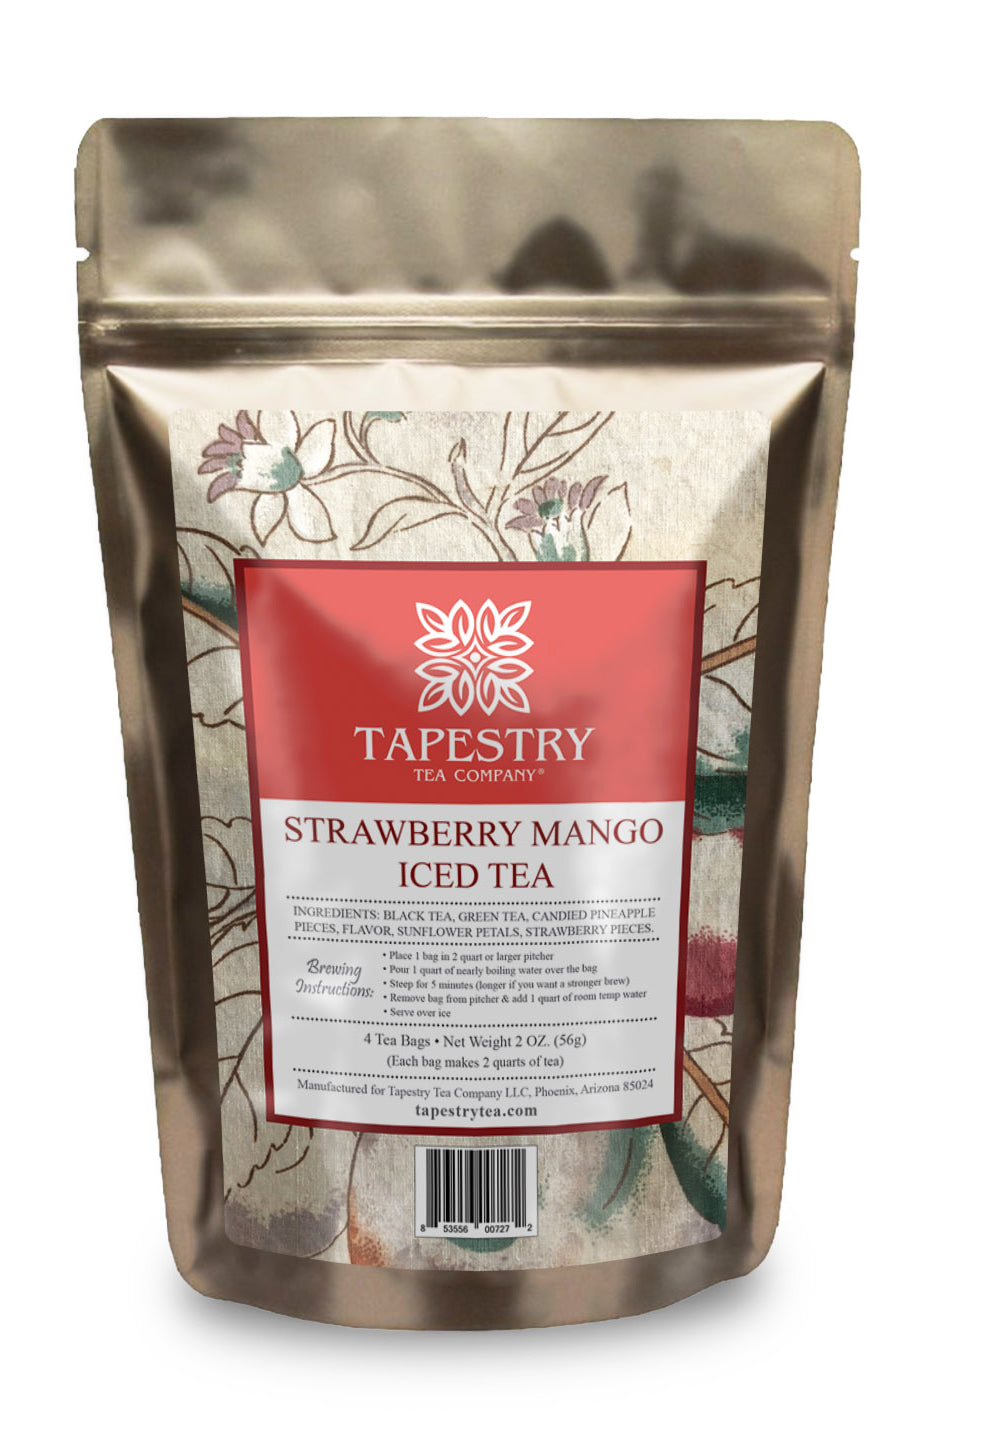 Tapestry Tea Strawberry Mango Black and Green Tea Fruit Blend Iced Tea - Family Size Iced Tea Bags